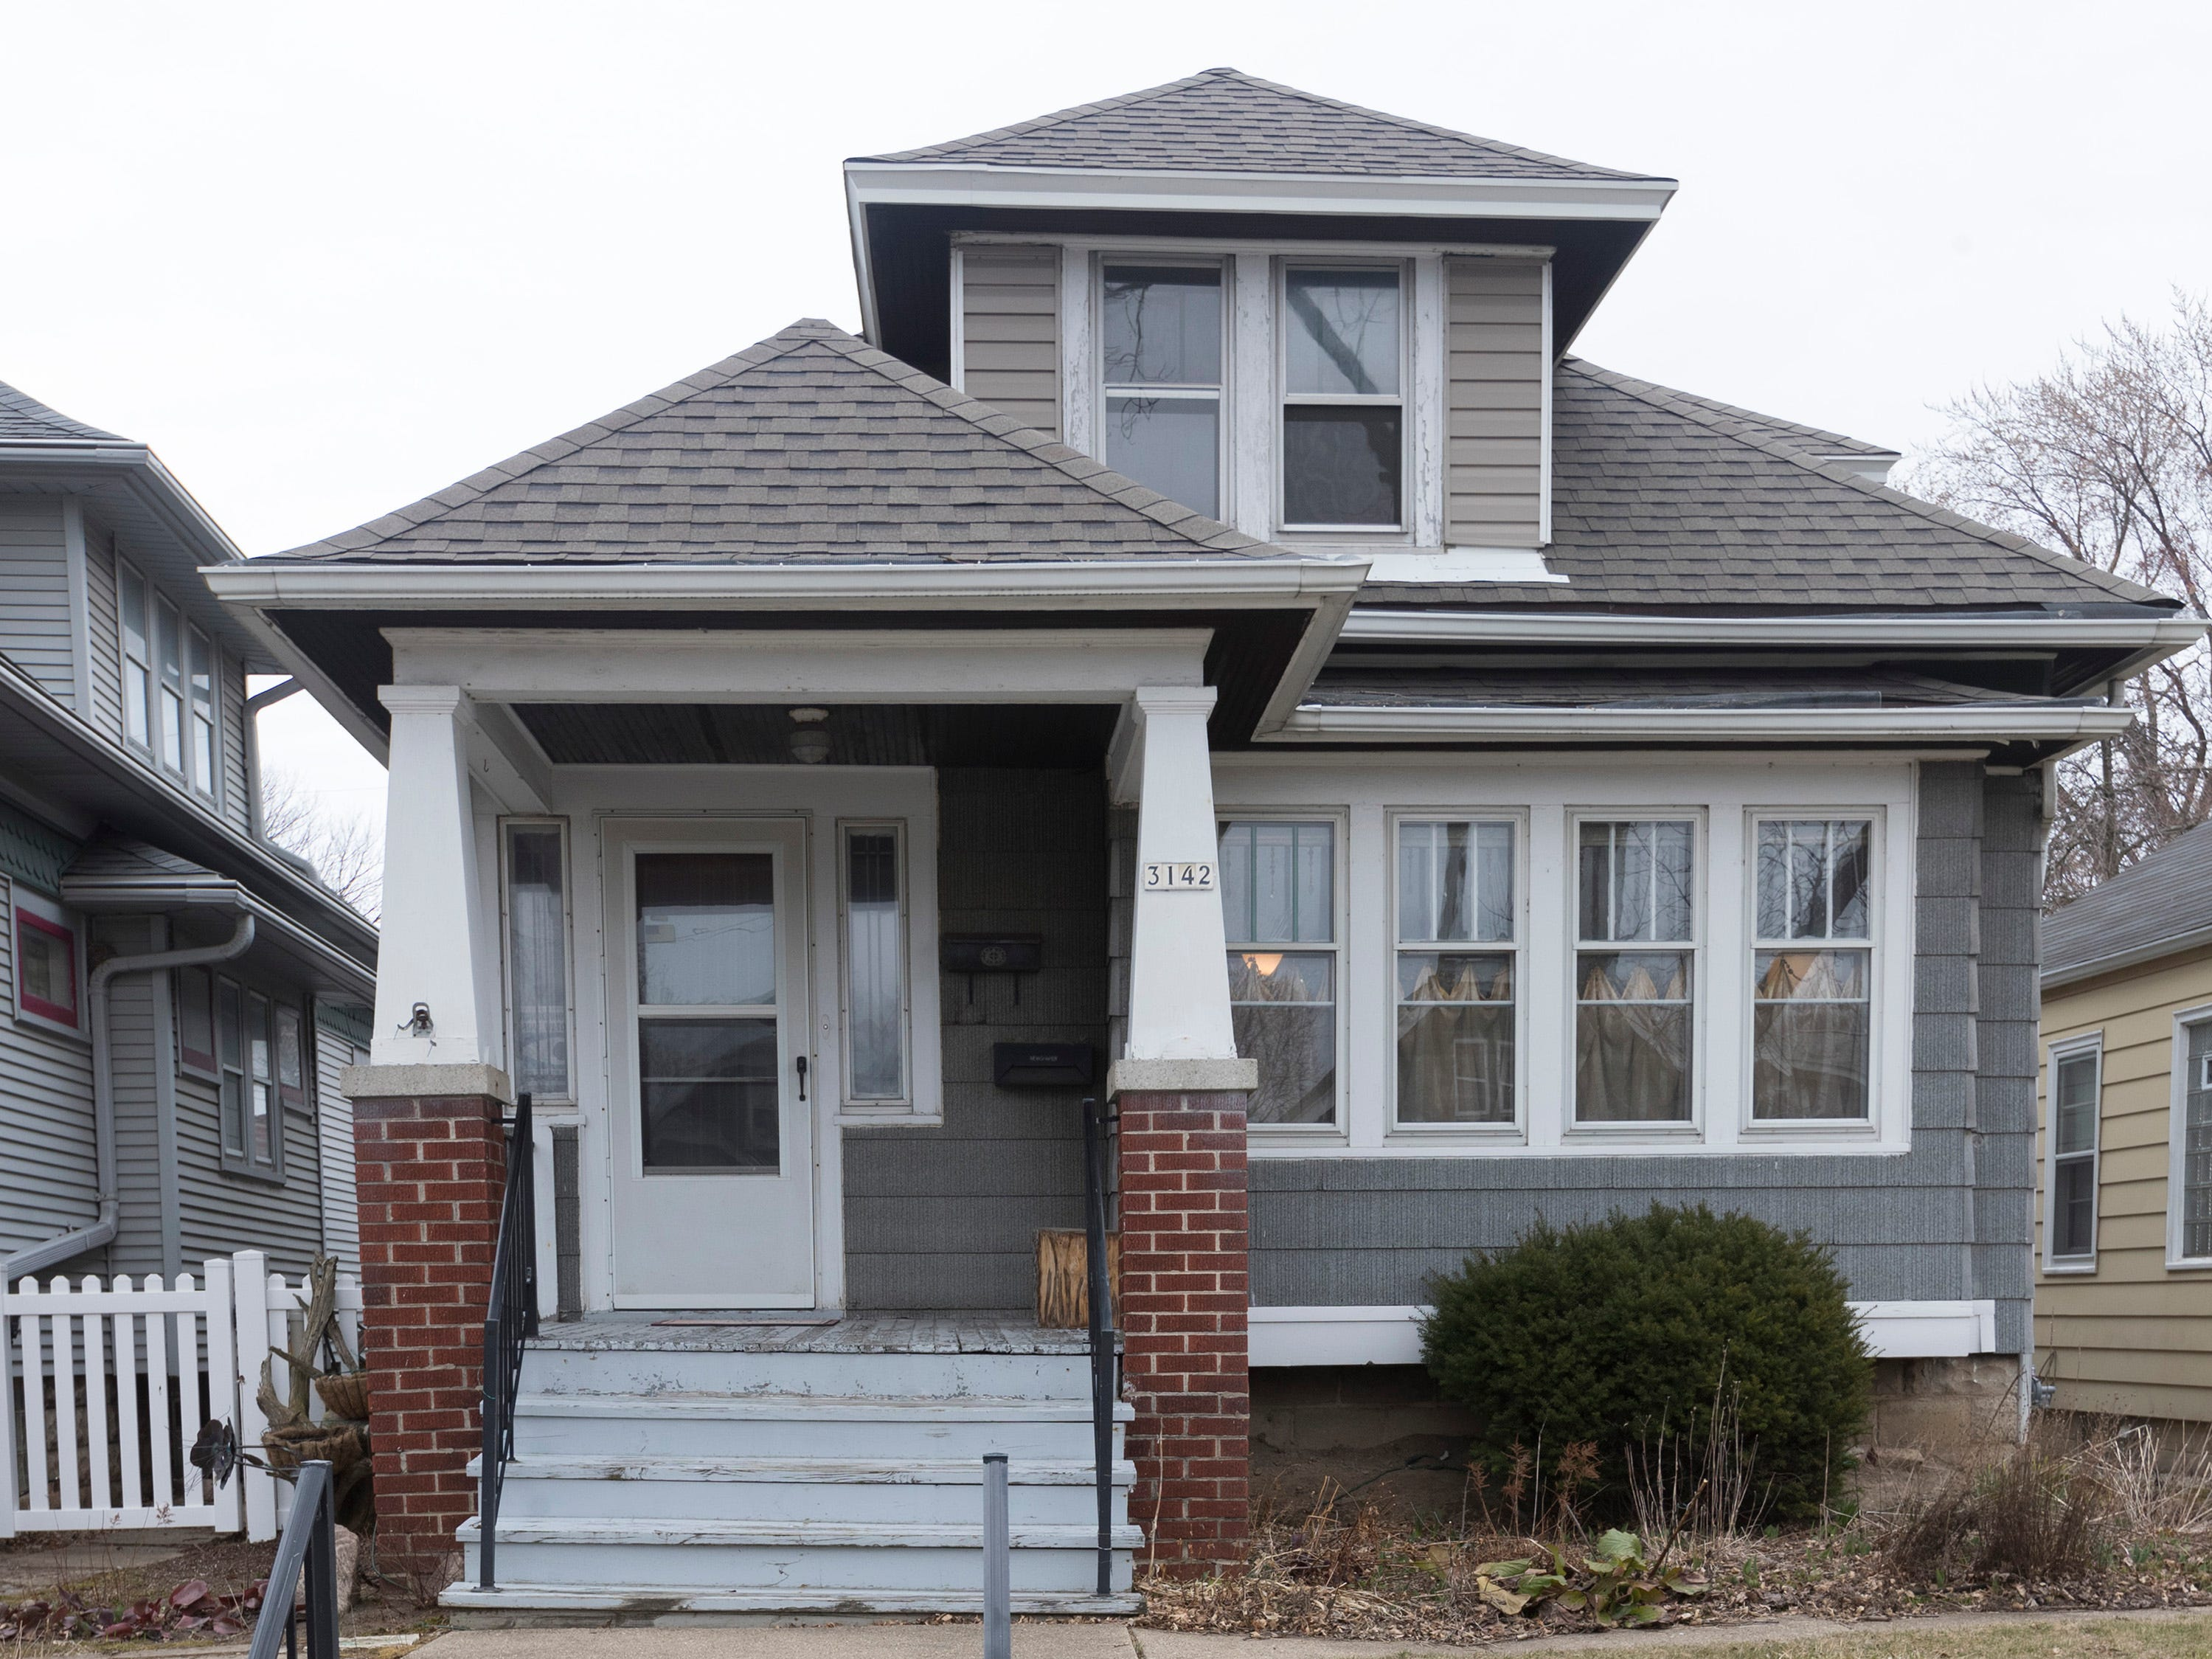 Linda Freund's Bay View bungalow has 1,100 square feet. She has yet to fix up the second floor.